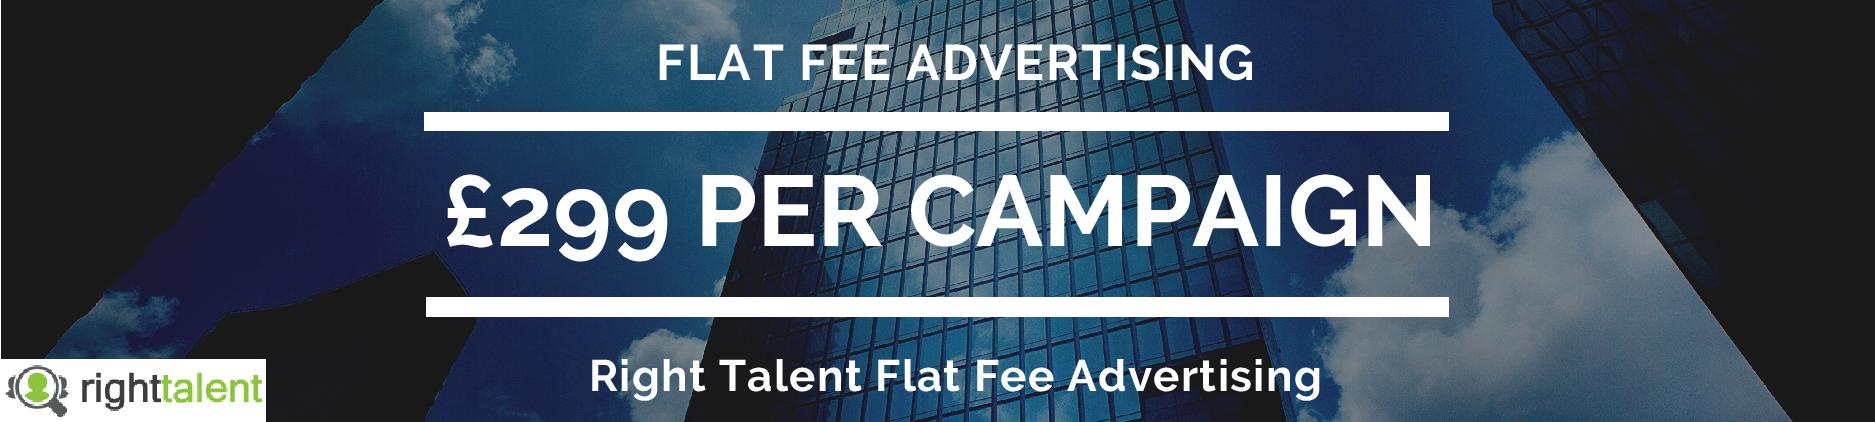 Flat Fee Advertising - Right Talent